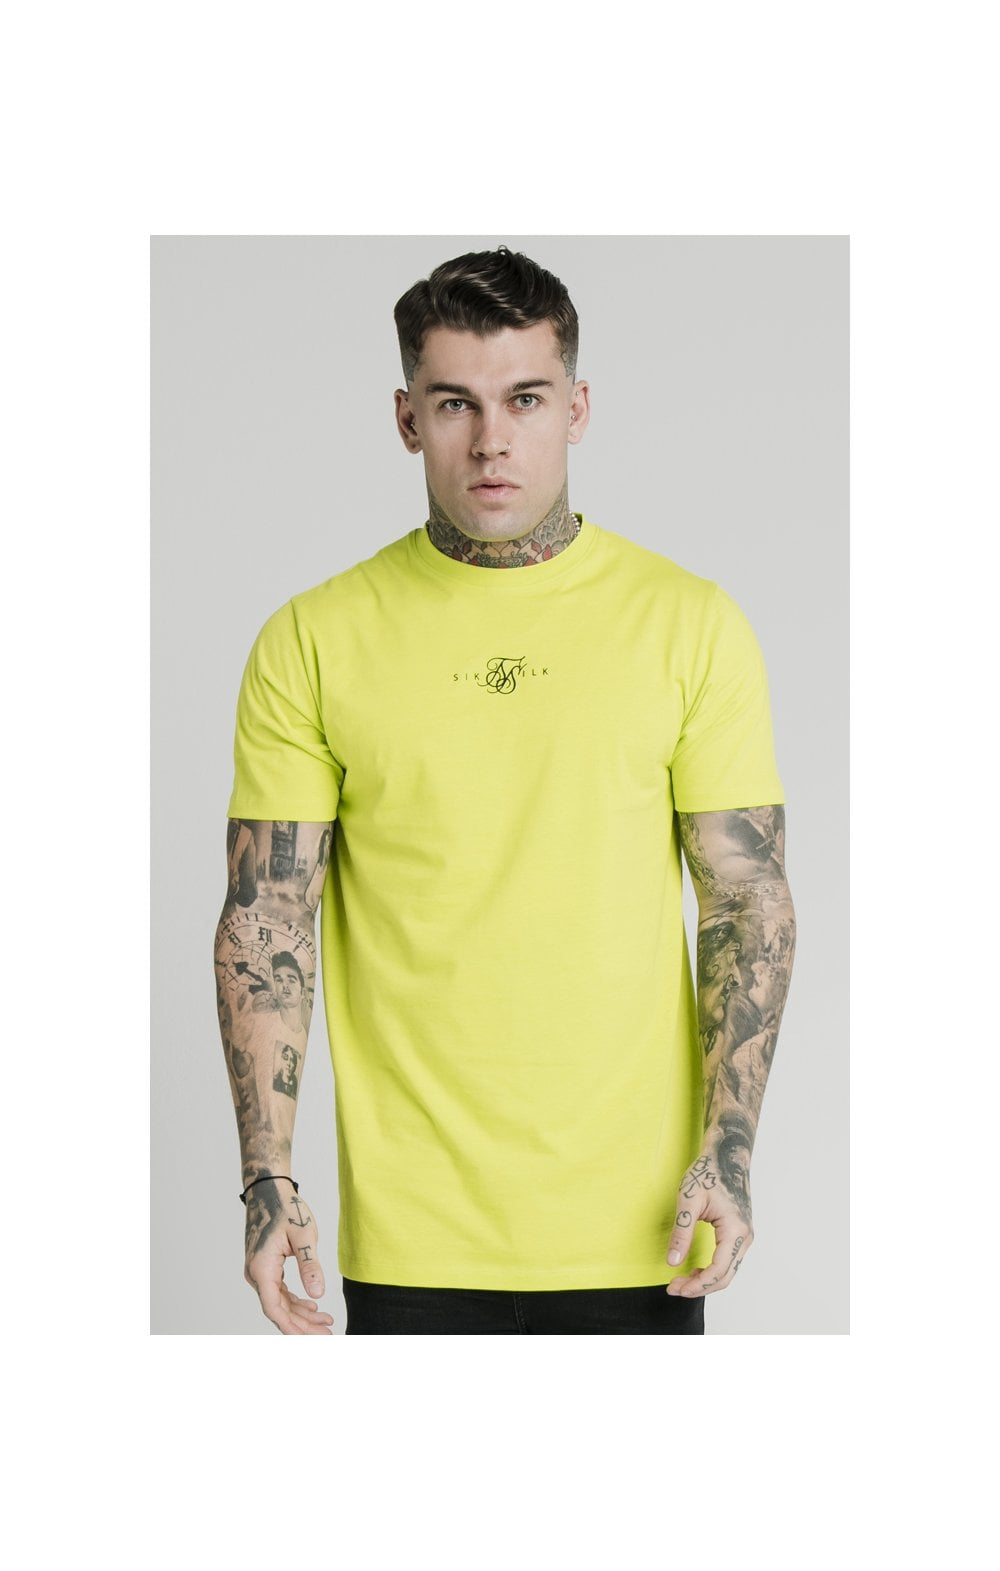 SikSilk S/S Square Hem Tee – Lime